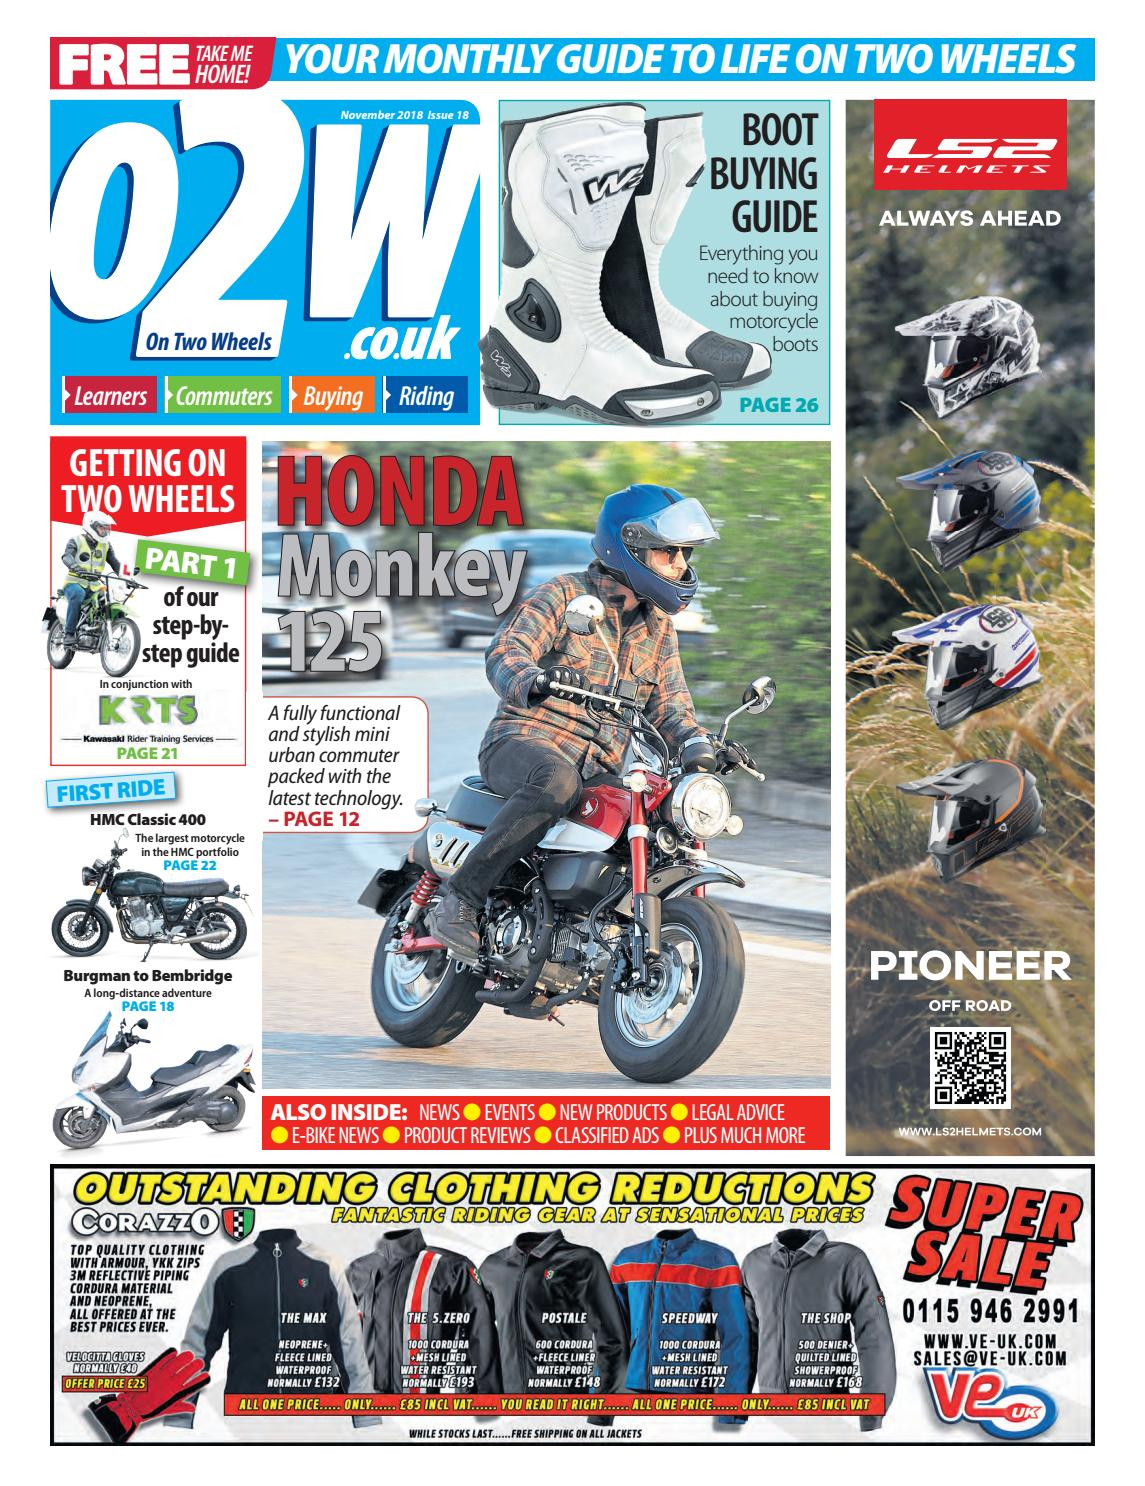 On Two Wheels By Mortons Media Group Ltd Issuu Sr500e Yamaha Motorcycle Front Disc Brake Caliper Diagram And Parts